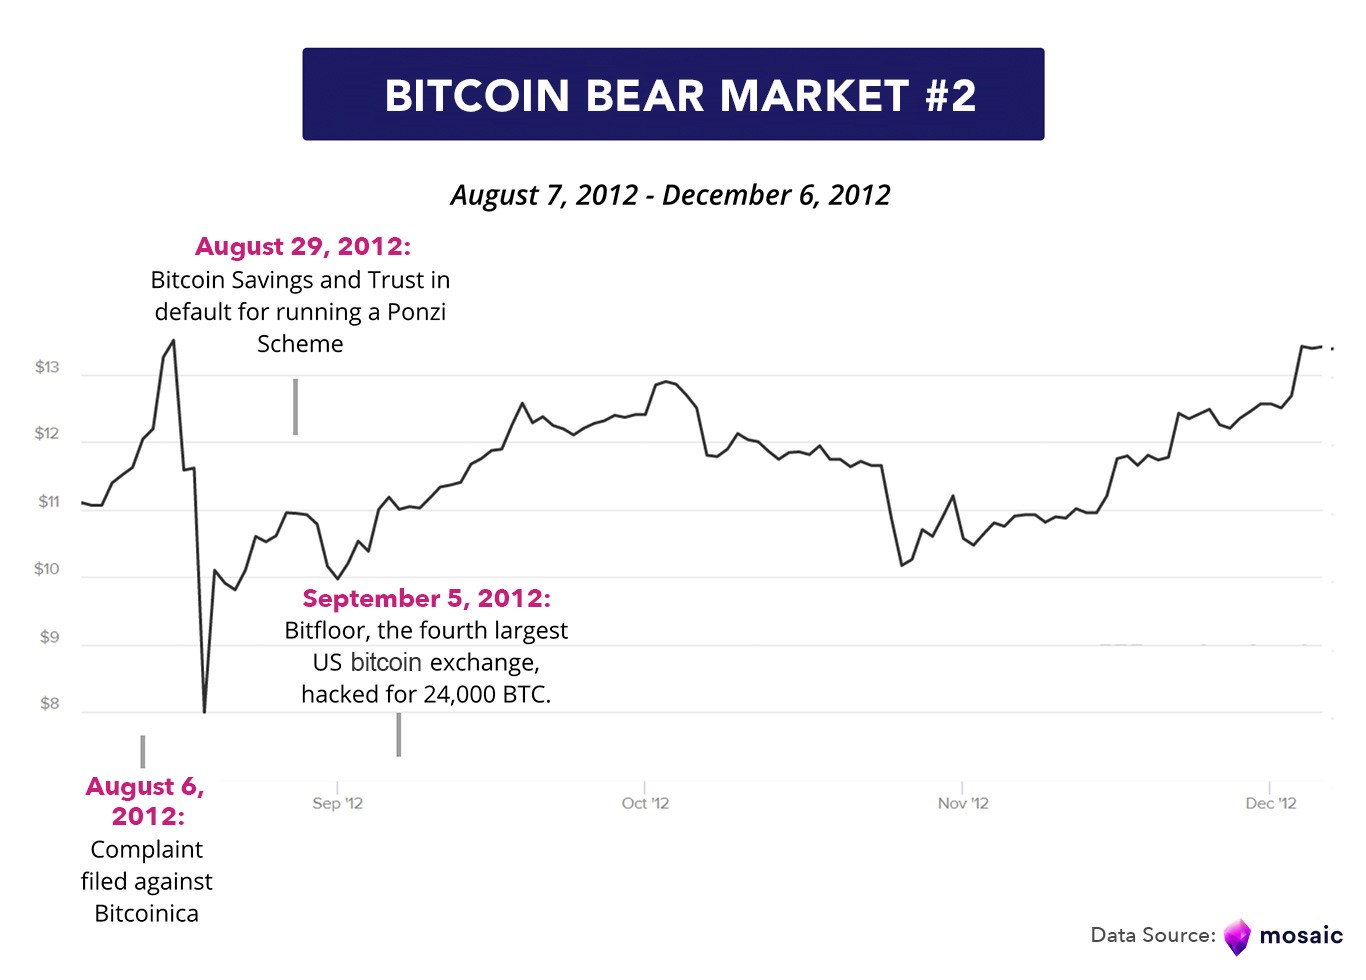 Immediately On The Following Day Bitcoin S Price Dropped Ilrating Market Focus This Narrative Additionally A Series Of Negative Events